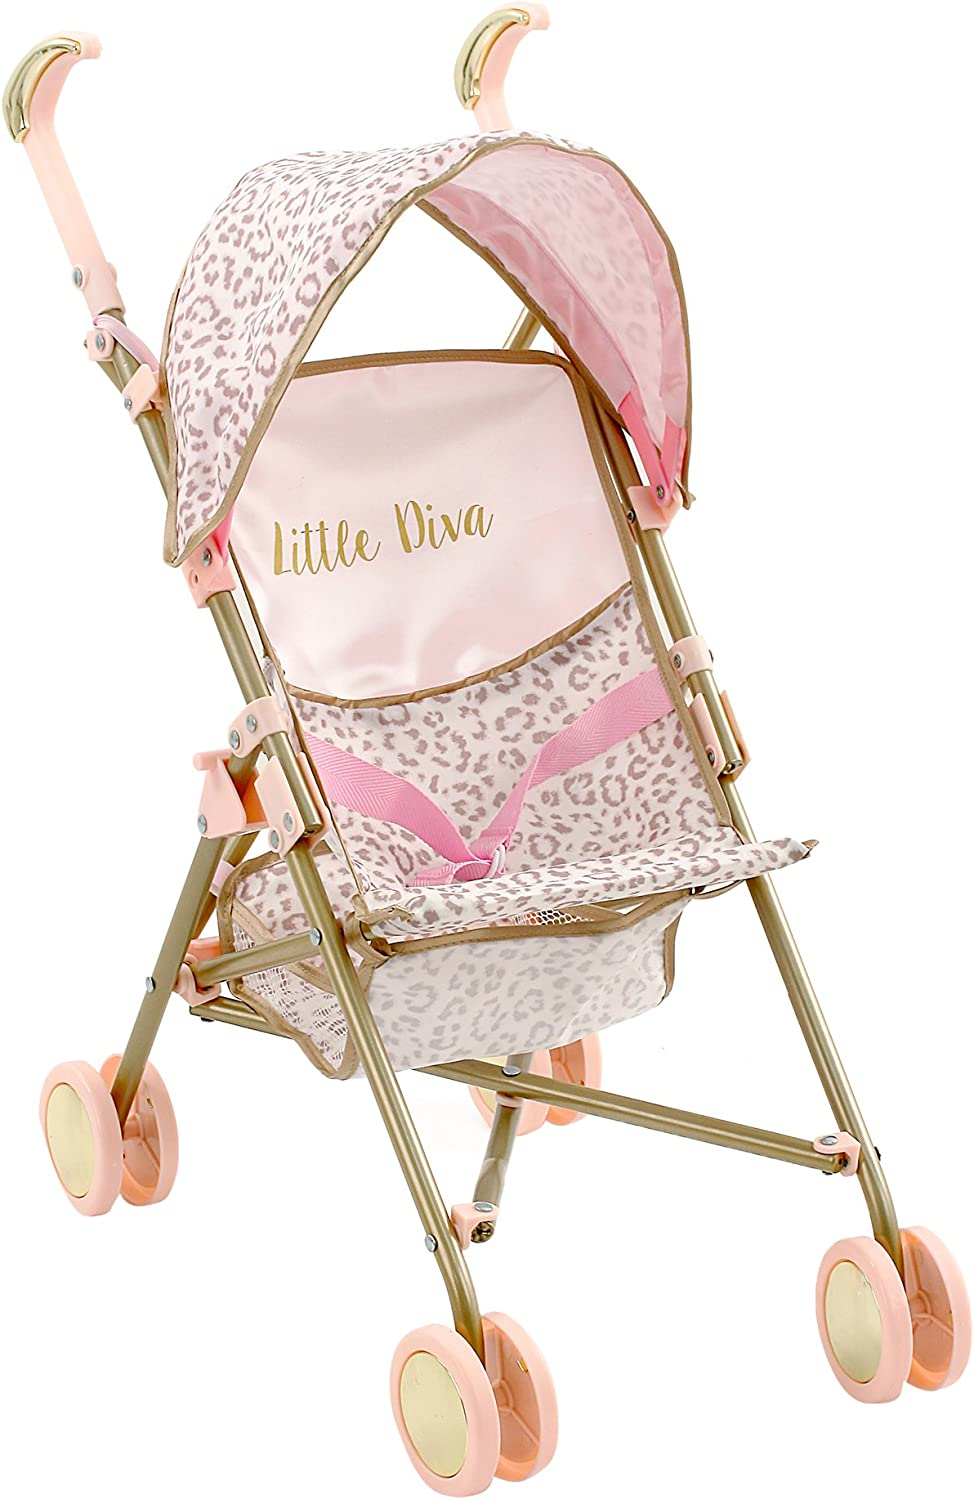 Little Diva Doll Stroller Role Play Toy